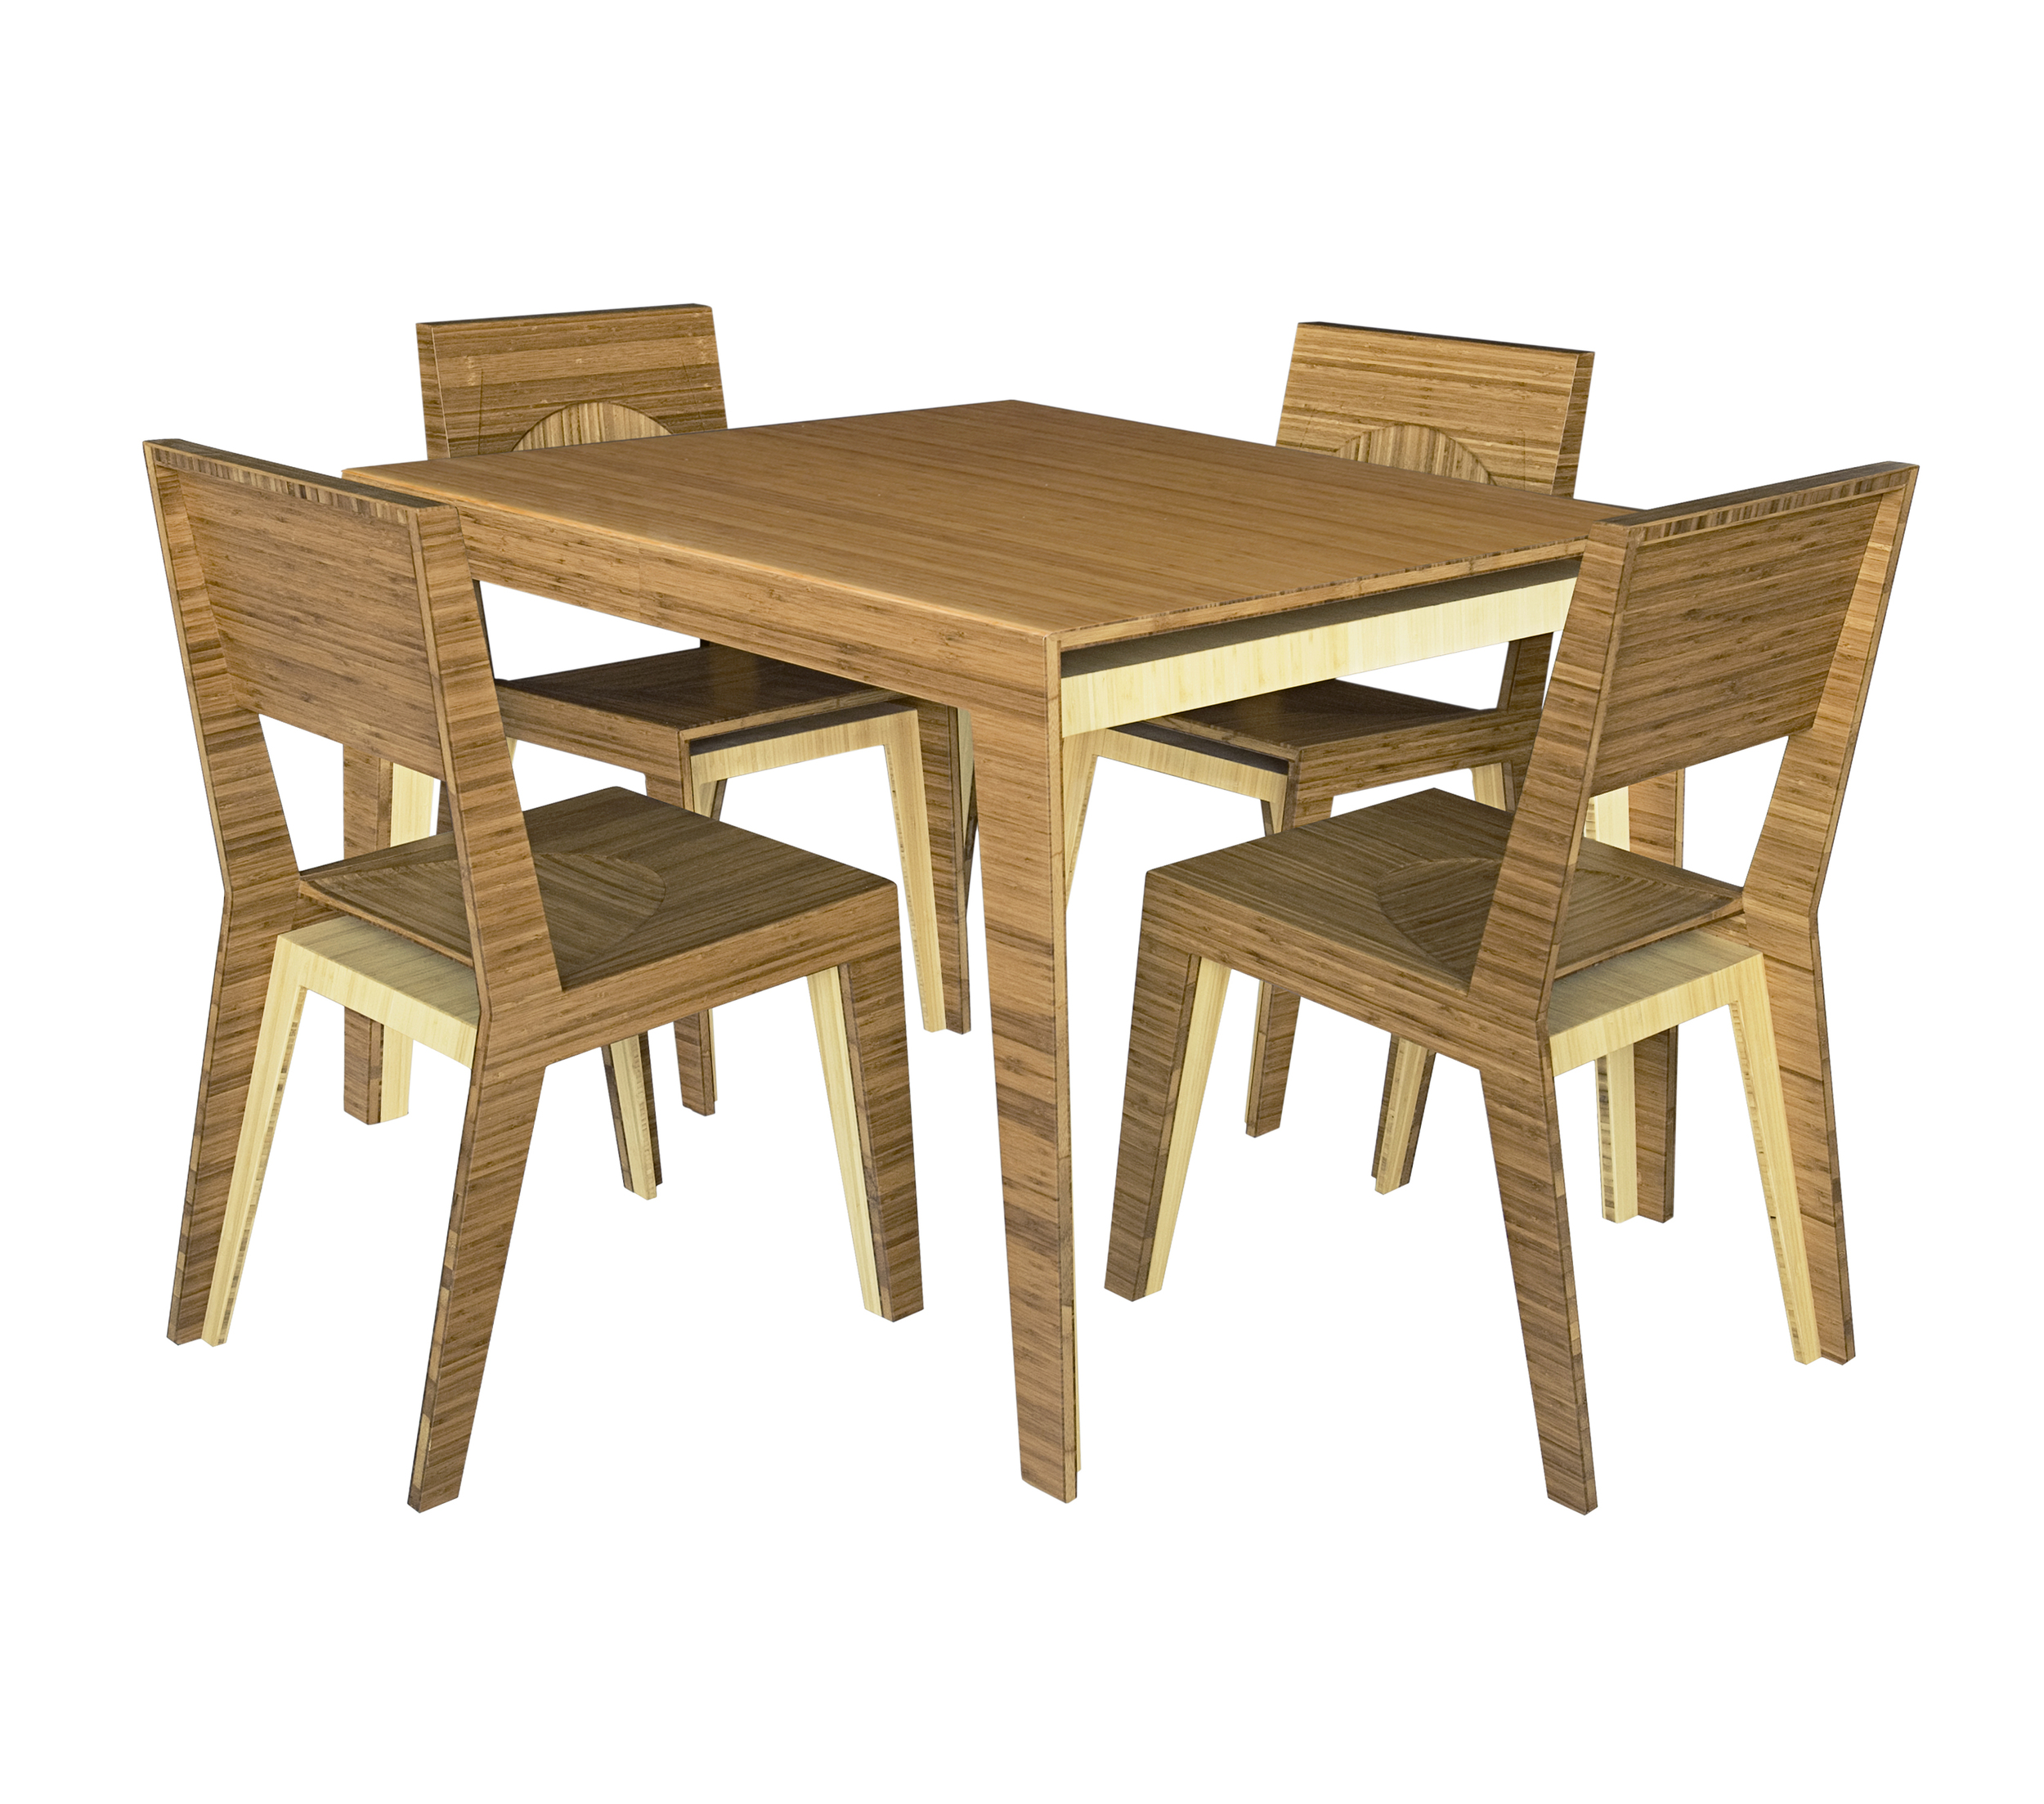 Hollow Dining Table 4 Person Brave Space Design